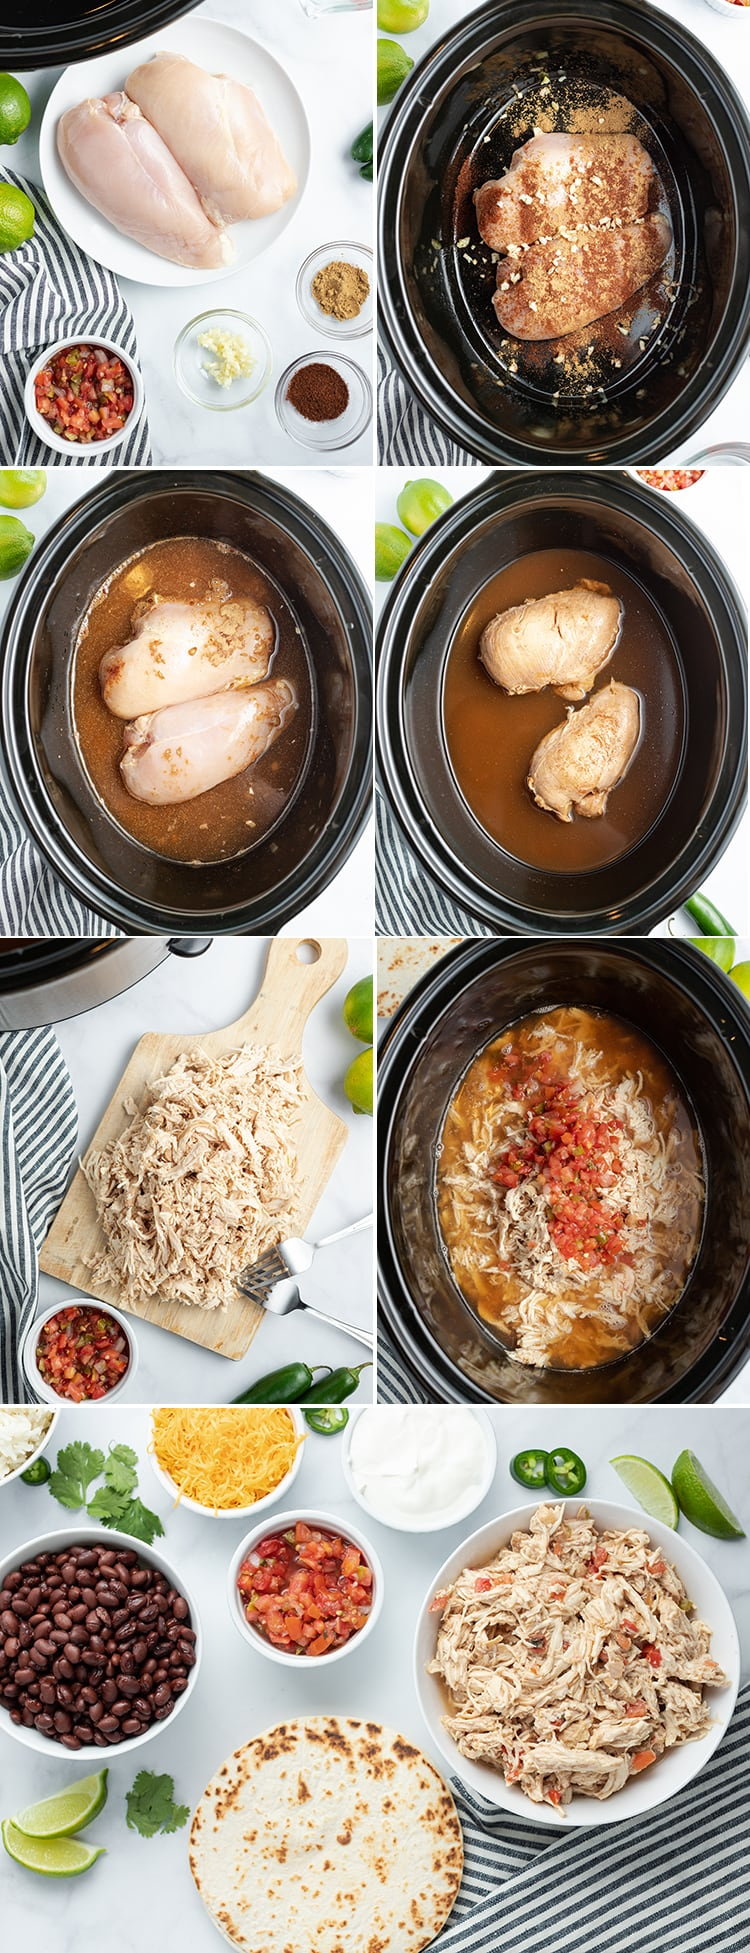 How to make crockpot chicken tacos